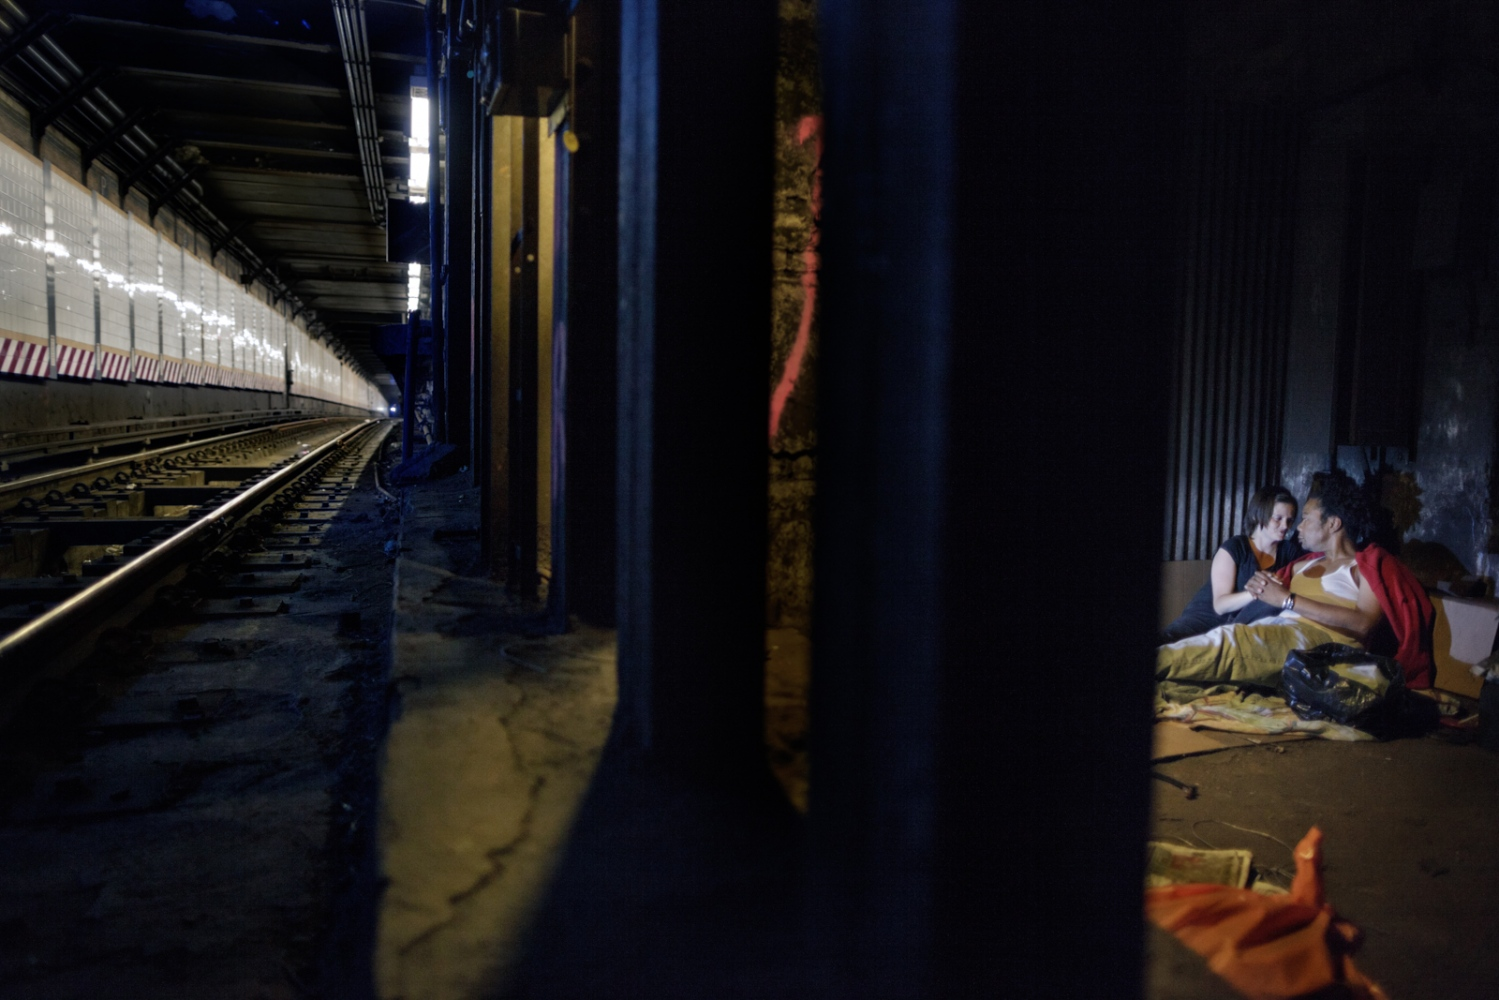 There is a vibrant world behind and beneath our surfaces. Jamaica and Zoe take refuge by the tracks. They slept in subway tunnels for more then two years before getting married and leaving the streets.